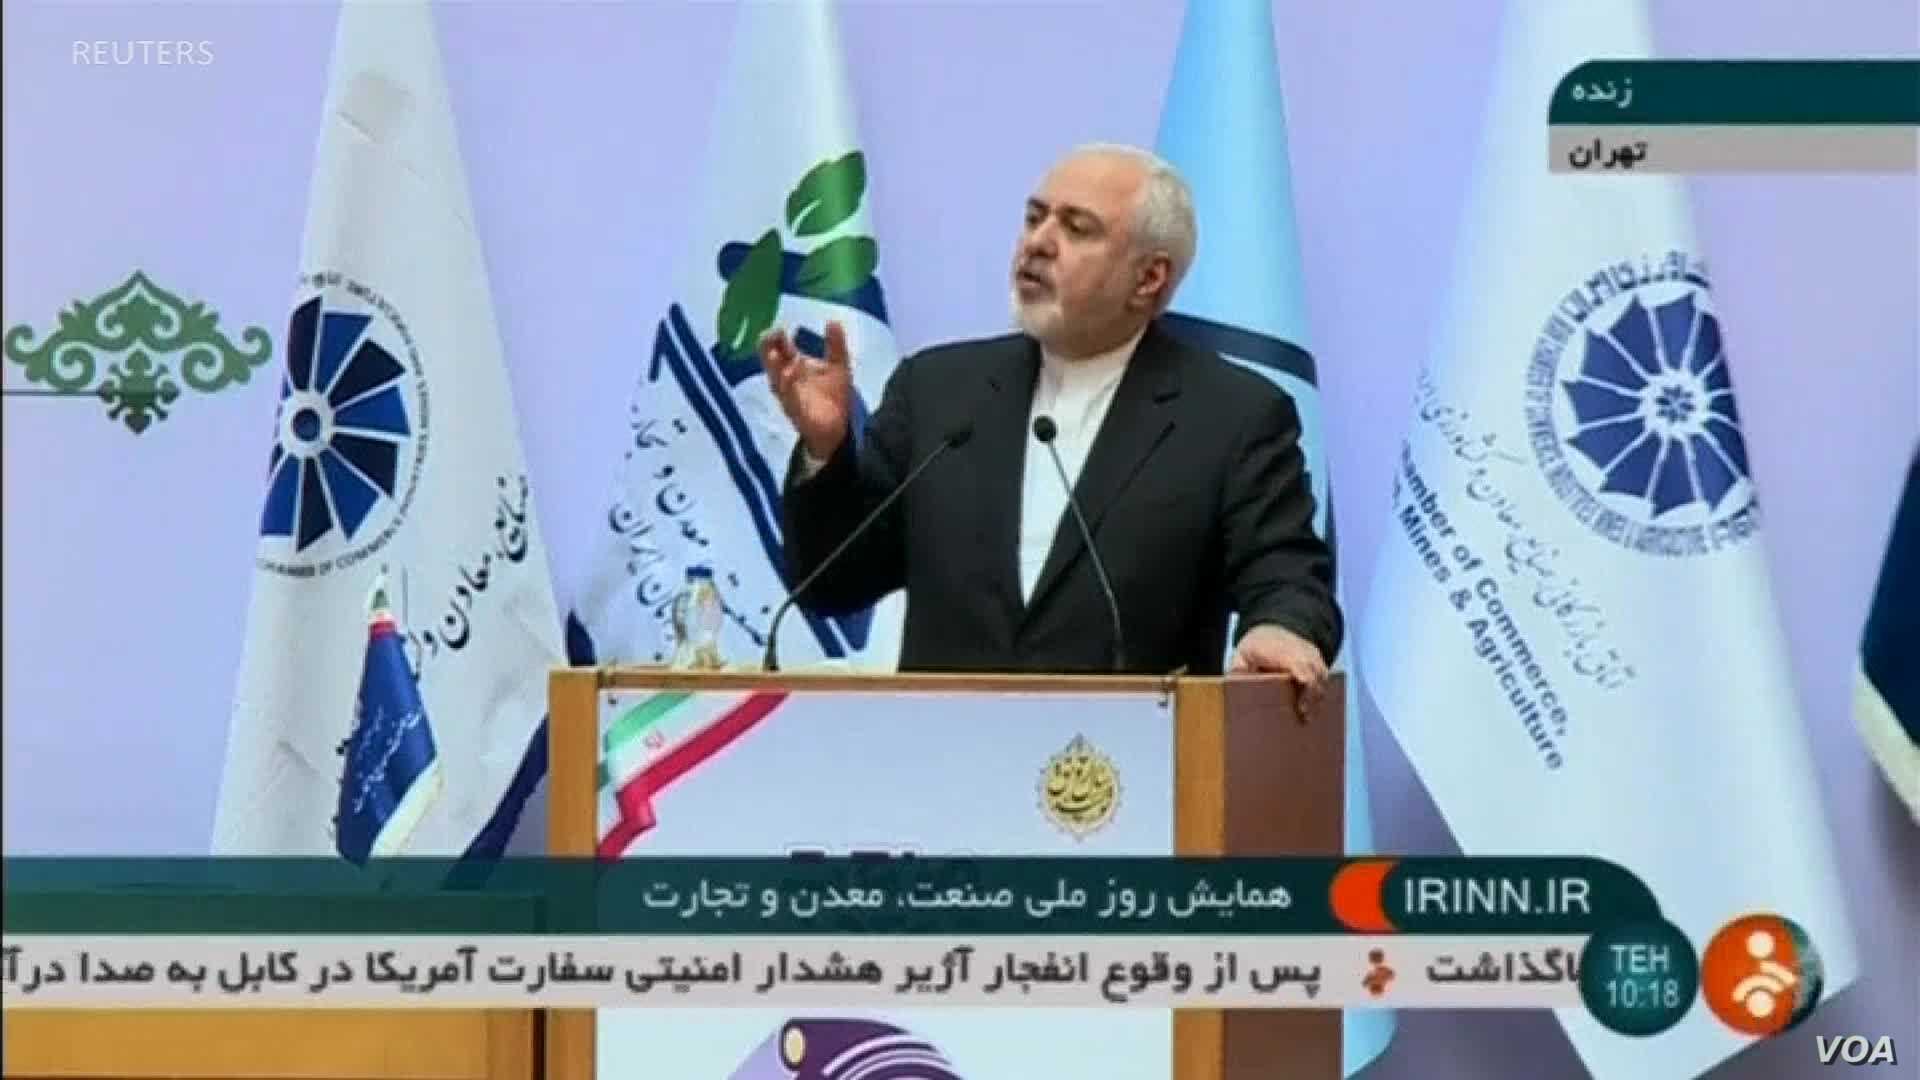 Analysts: Iran Unlikely to Return to Nuclear Negotiations